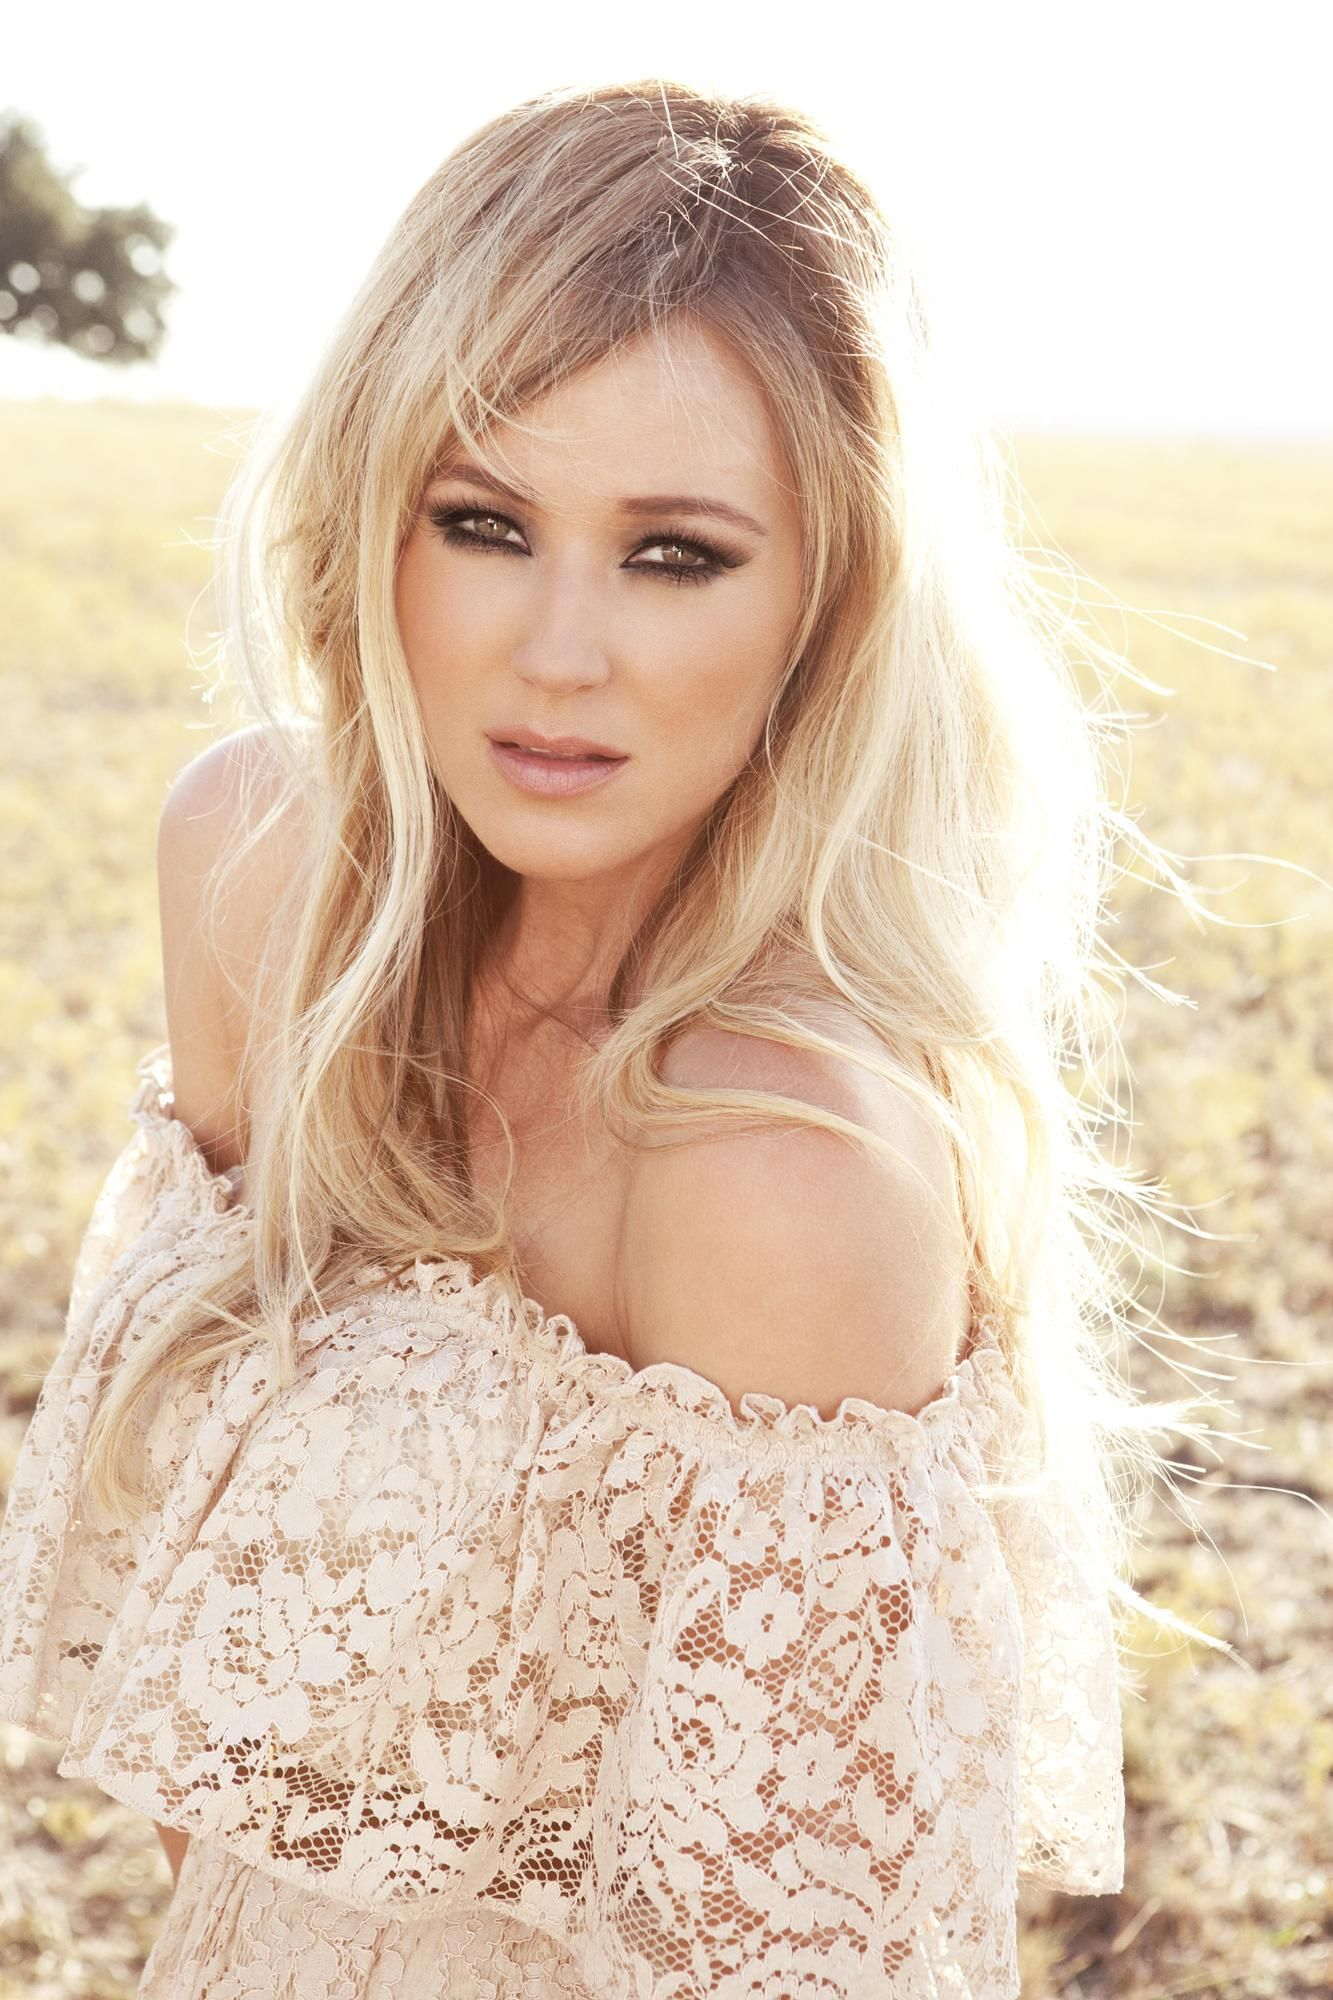 Jewel Was Ranked 73 On Vh1S 100 Sexiest Artists List -2527